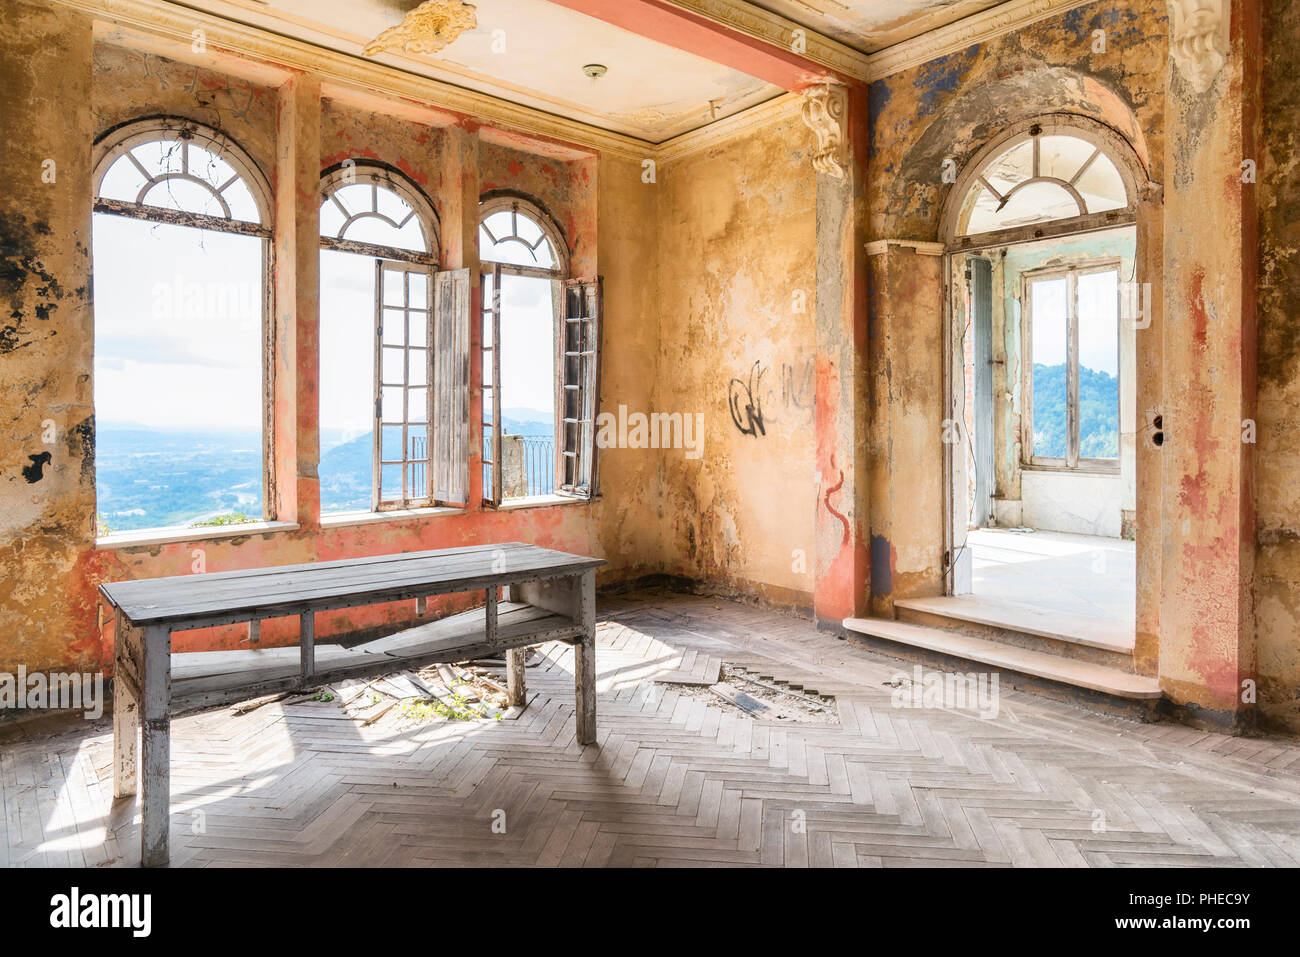 Spooky interior of abandoned ruined house Stock Photo